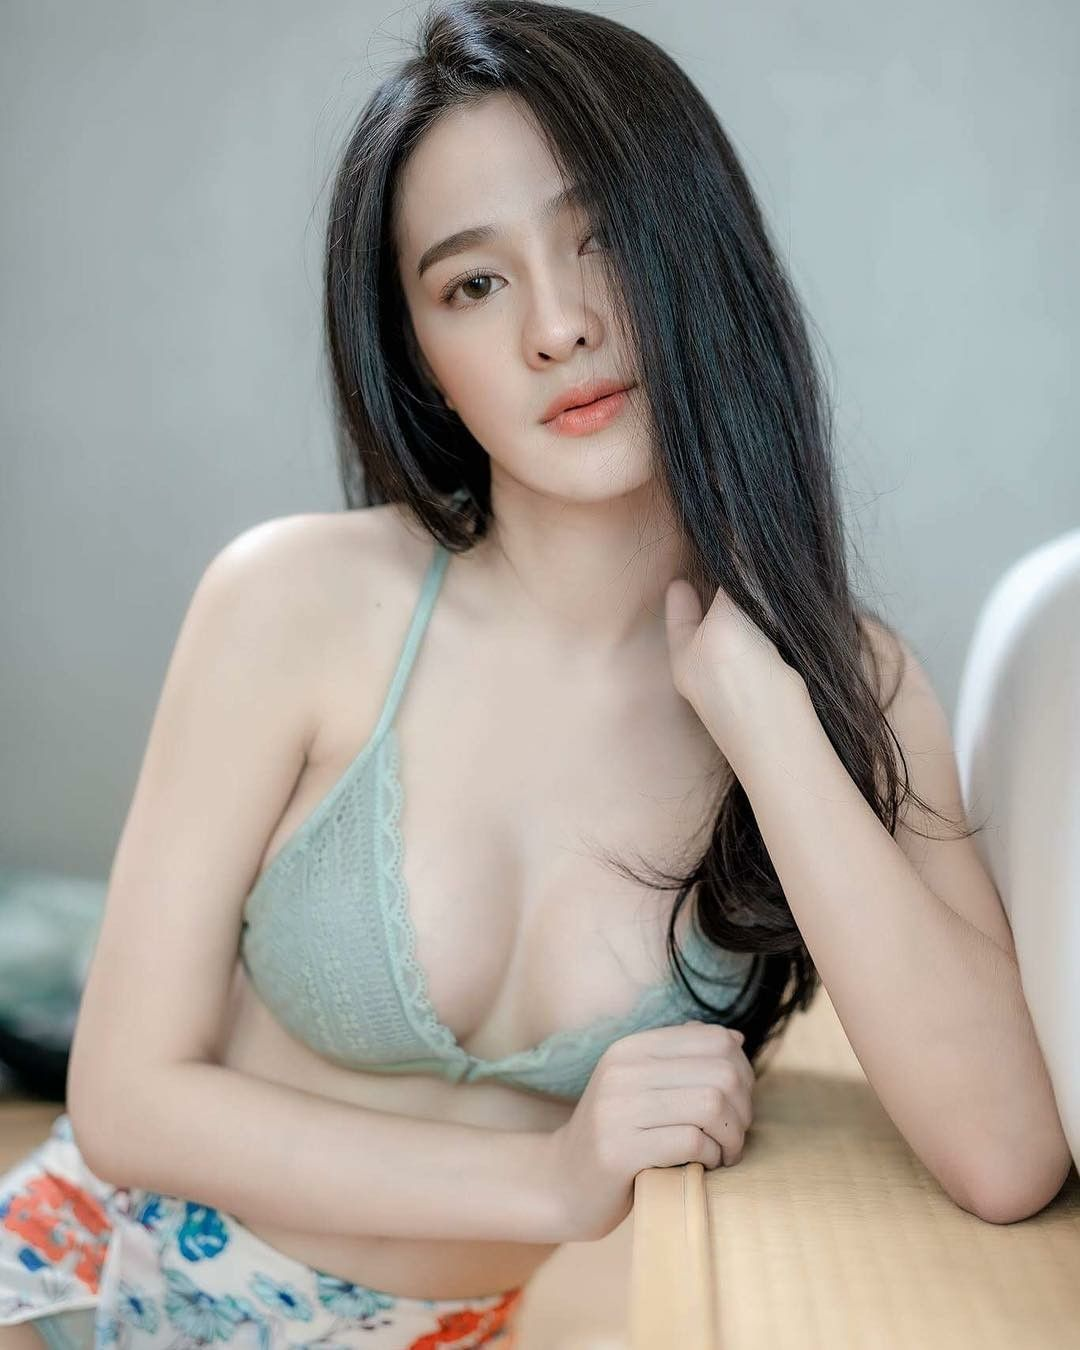 Youtube Jestina Lam nude photos 2019